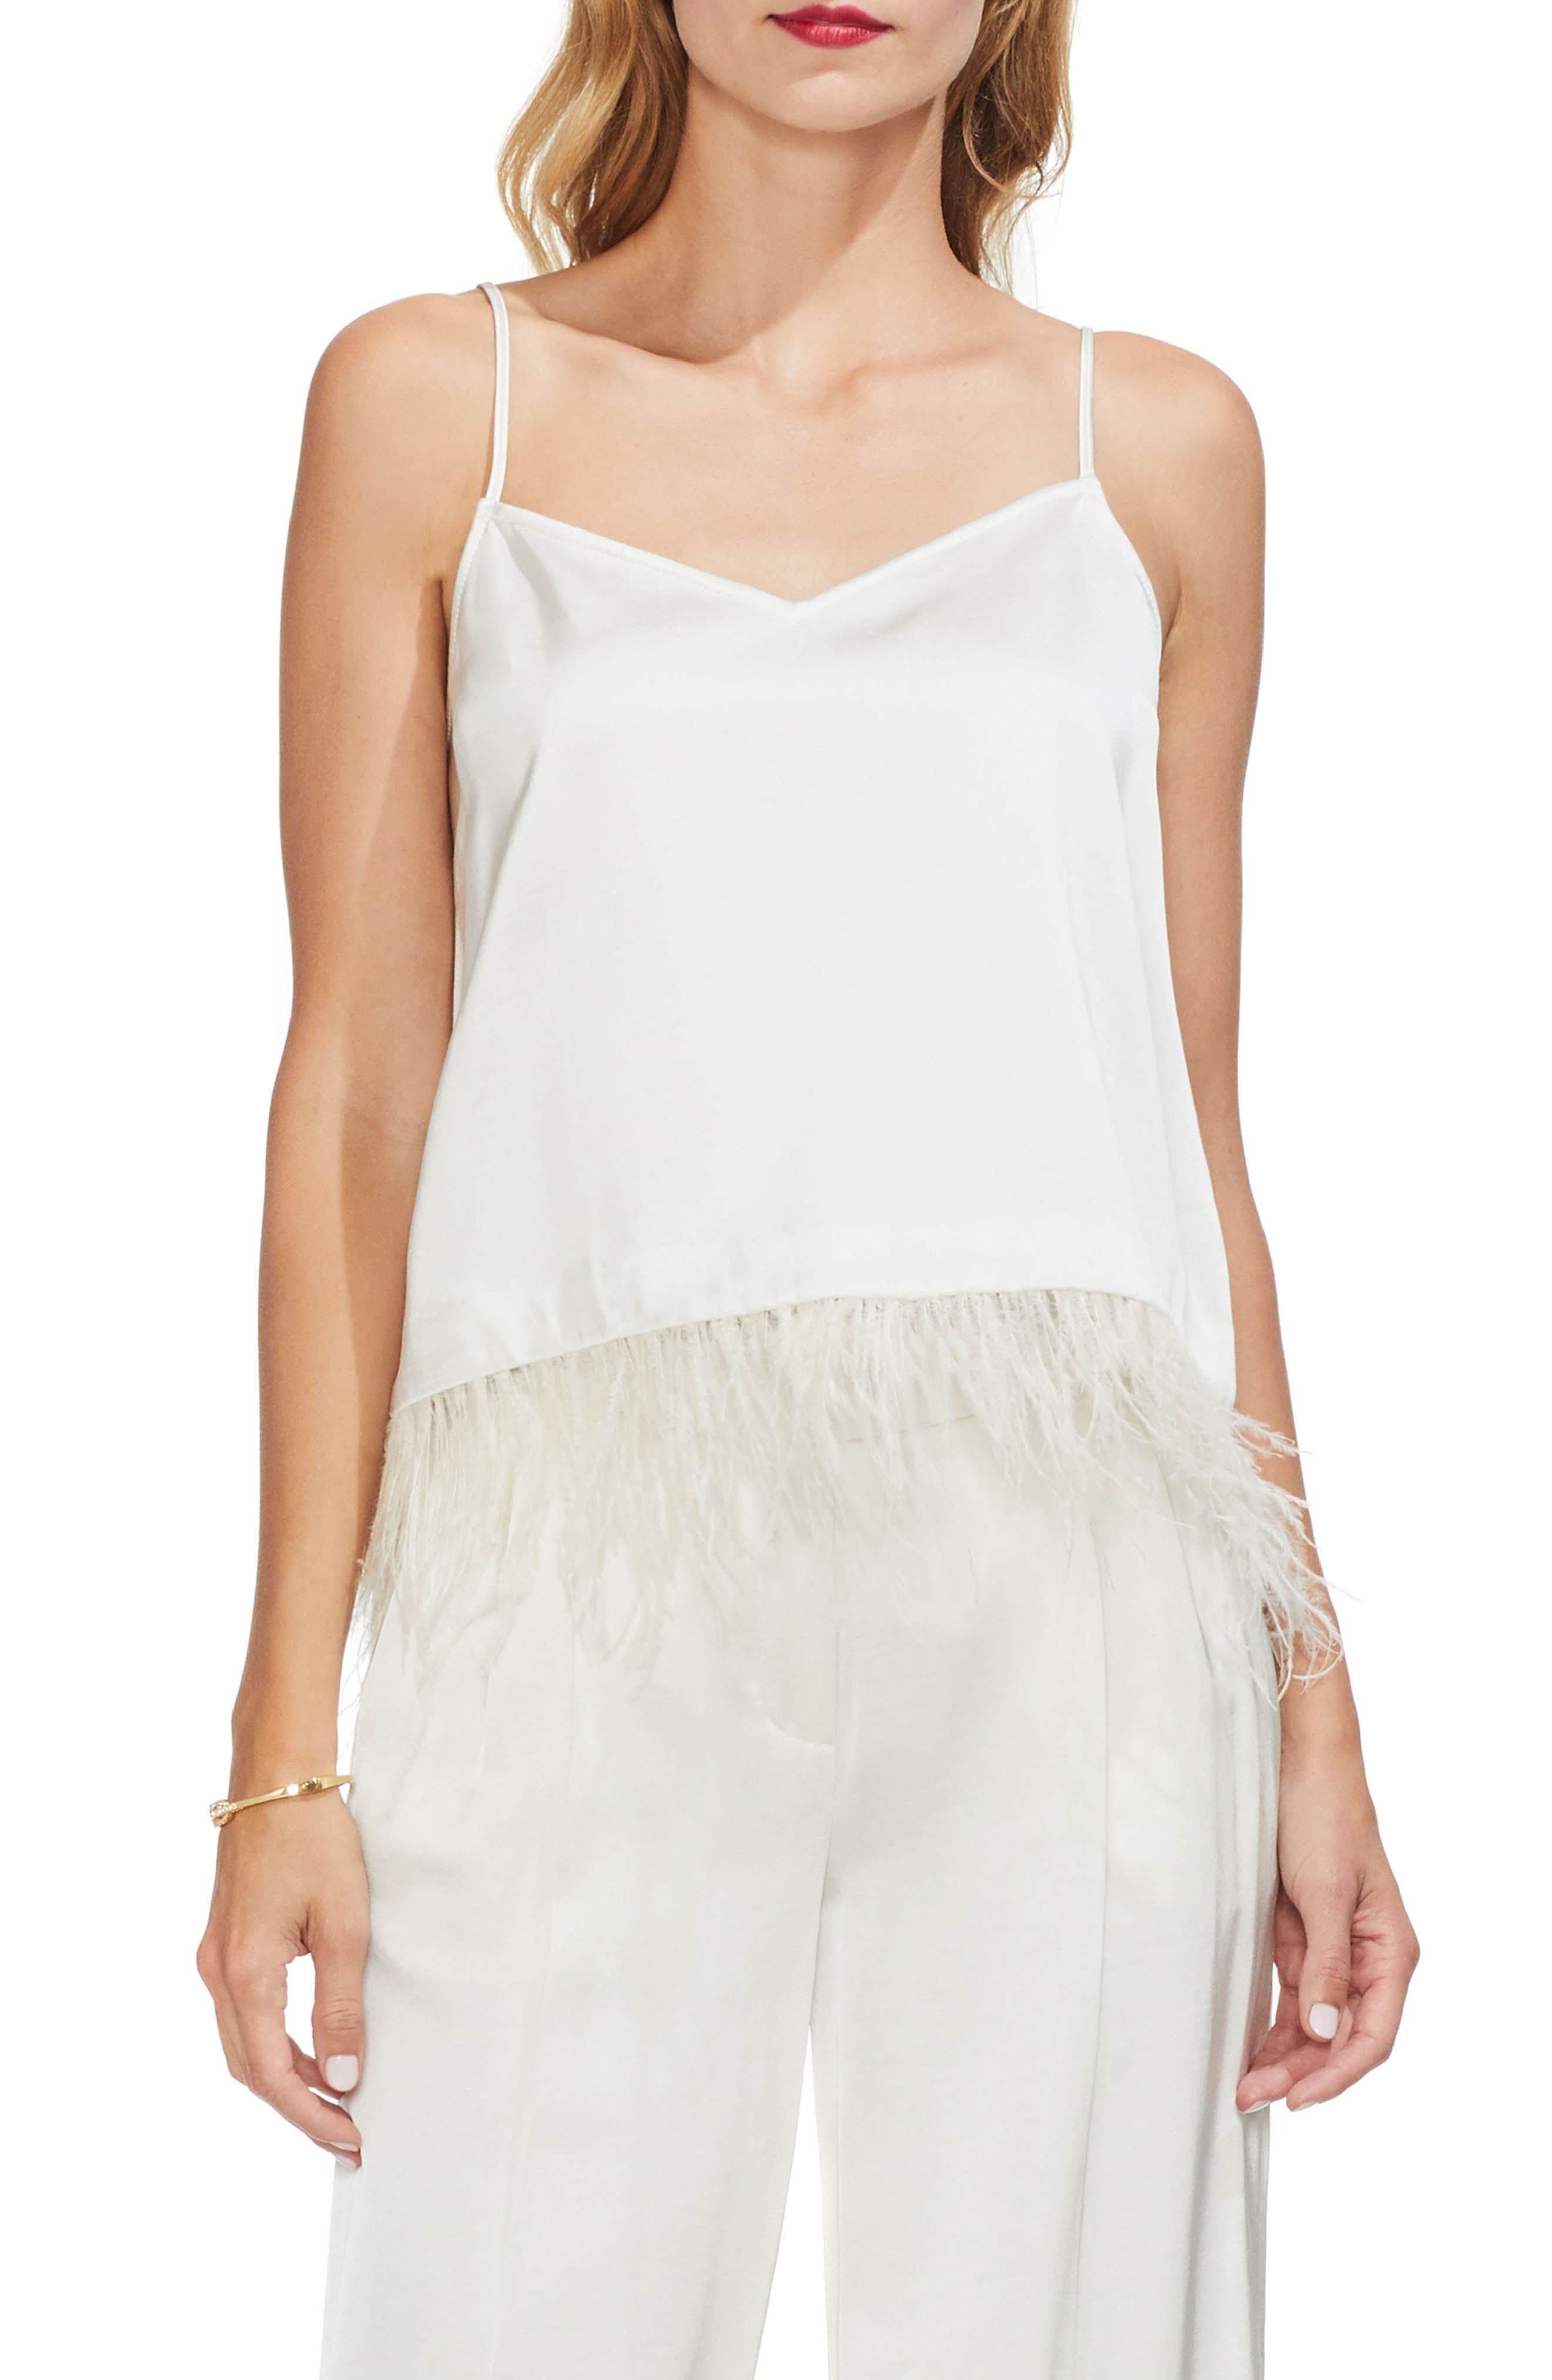 Soft Satin Feather Detail Chiffon Camisole in Pearl Ivory